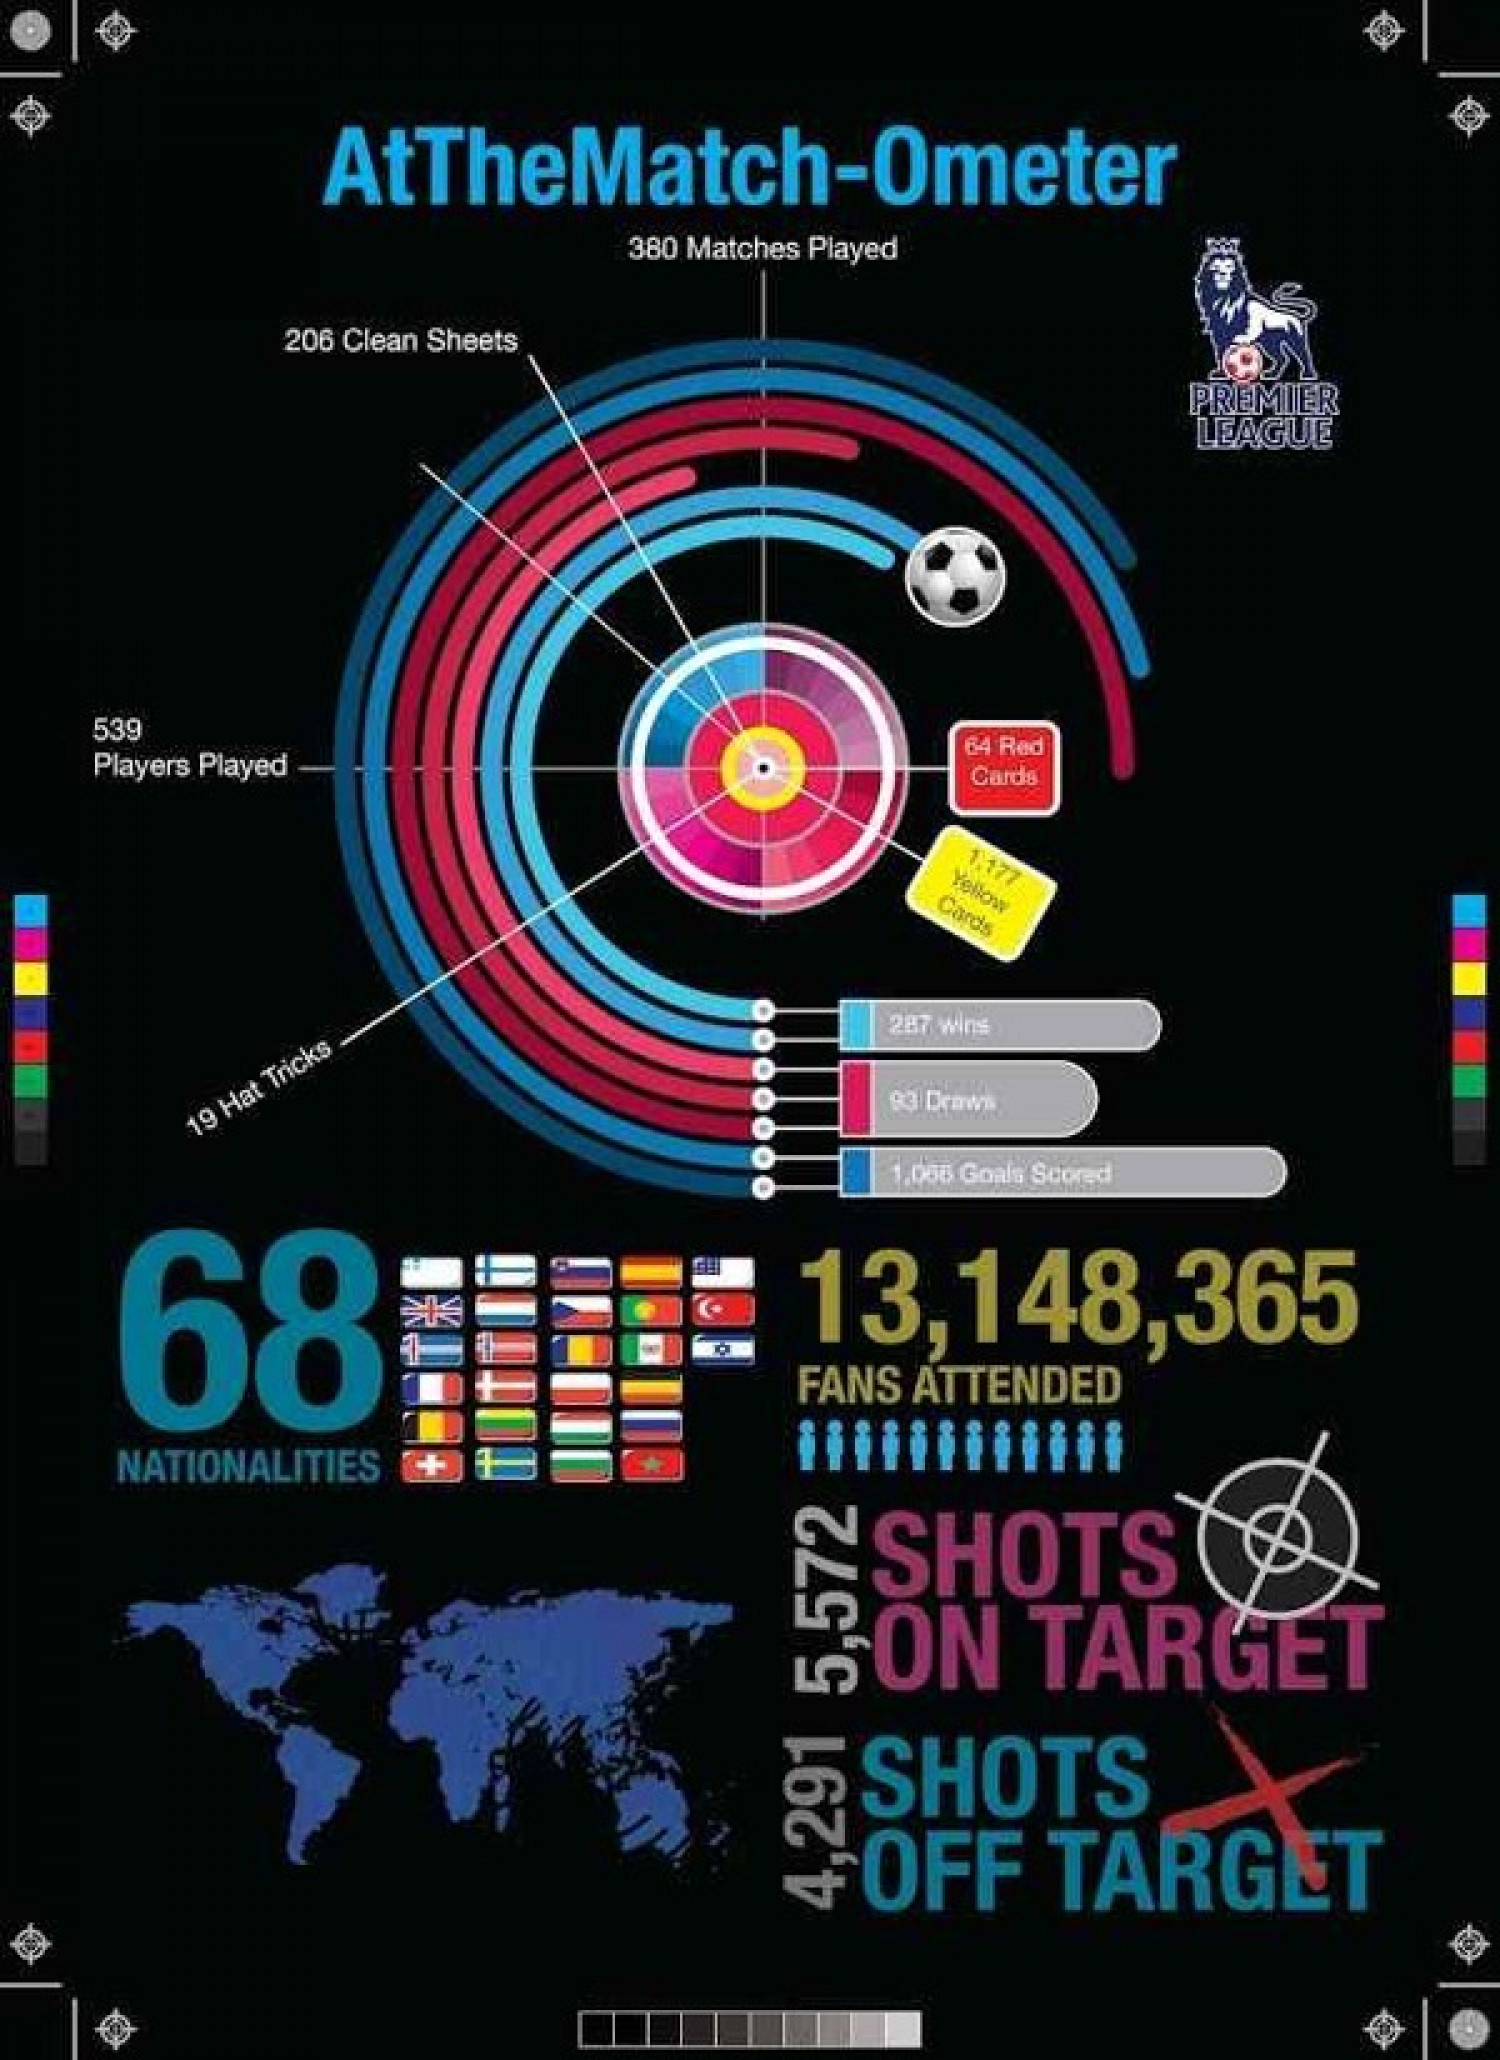 AtTheMatch-Ometer Infographic